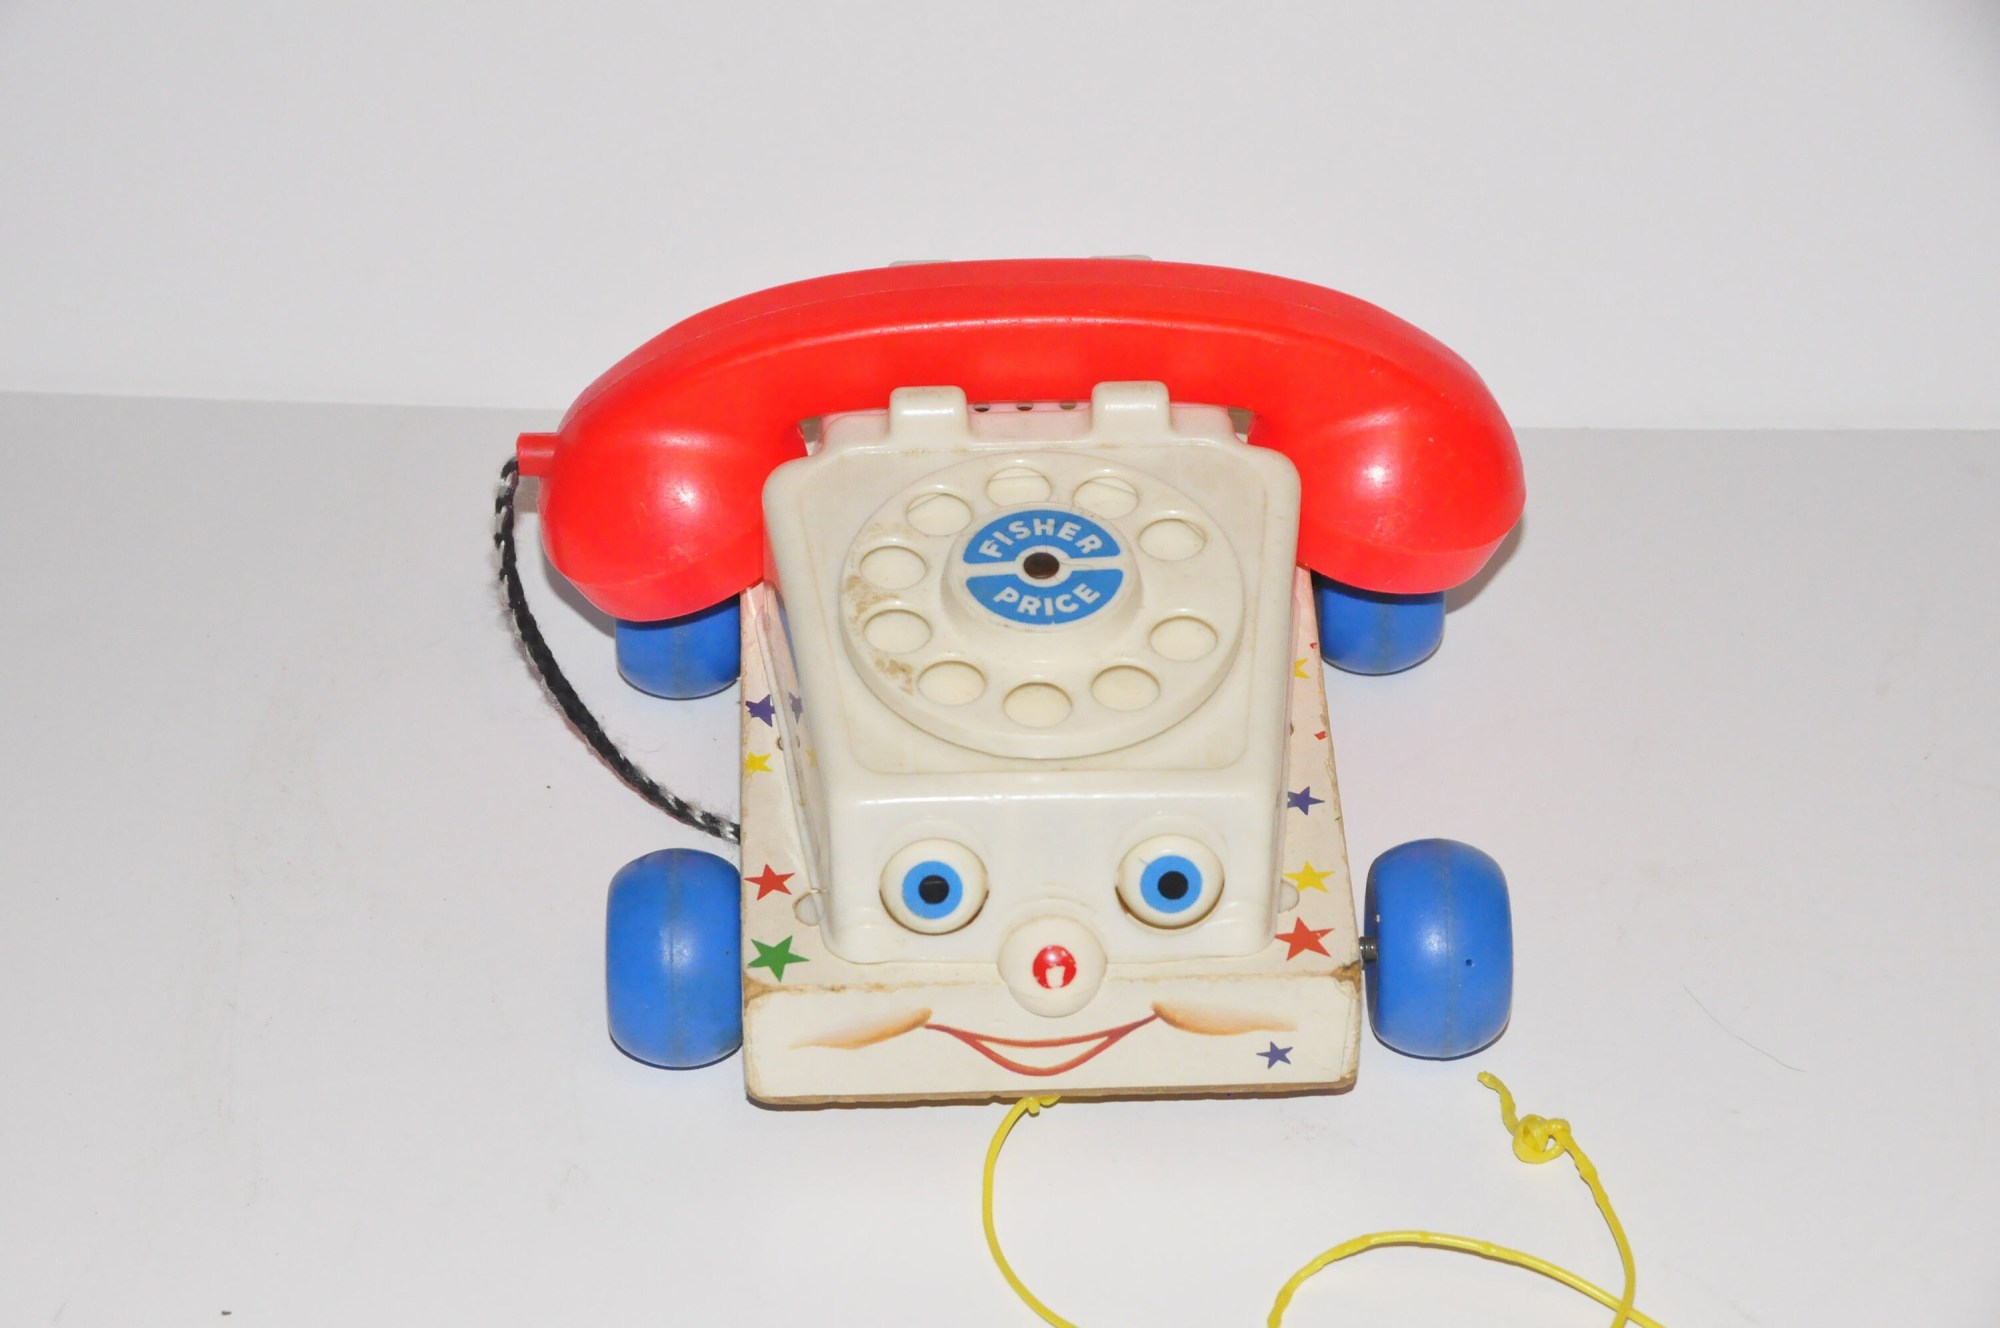 hight resolution of 50 fisher price chatter pull along telephone rotary toy